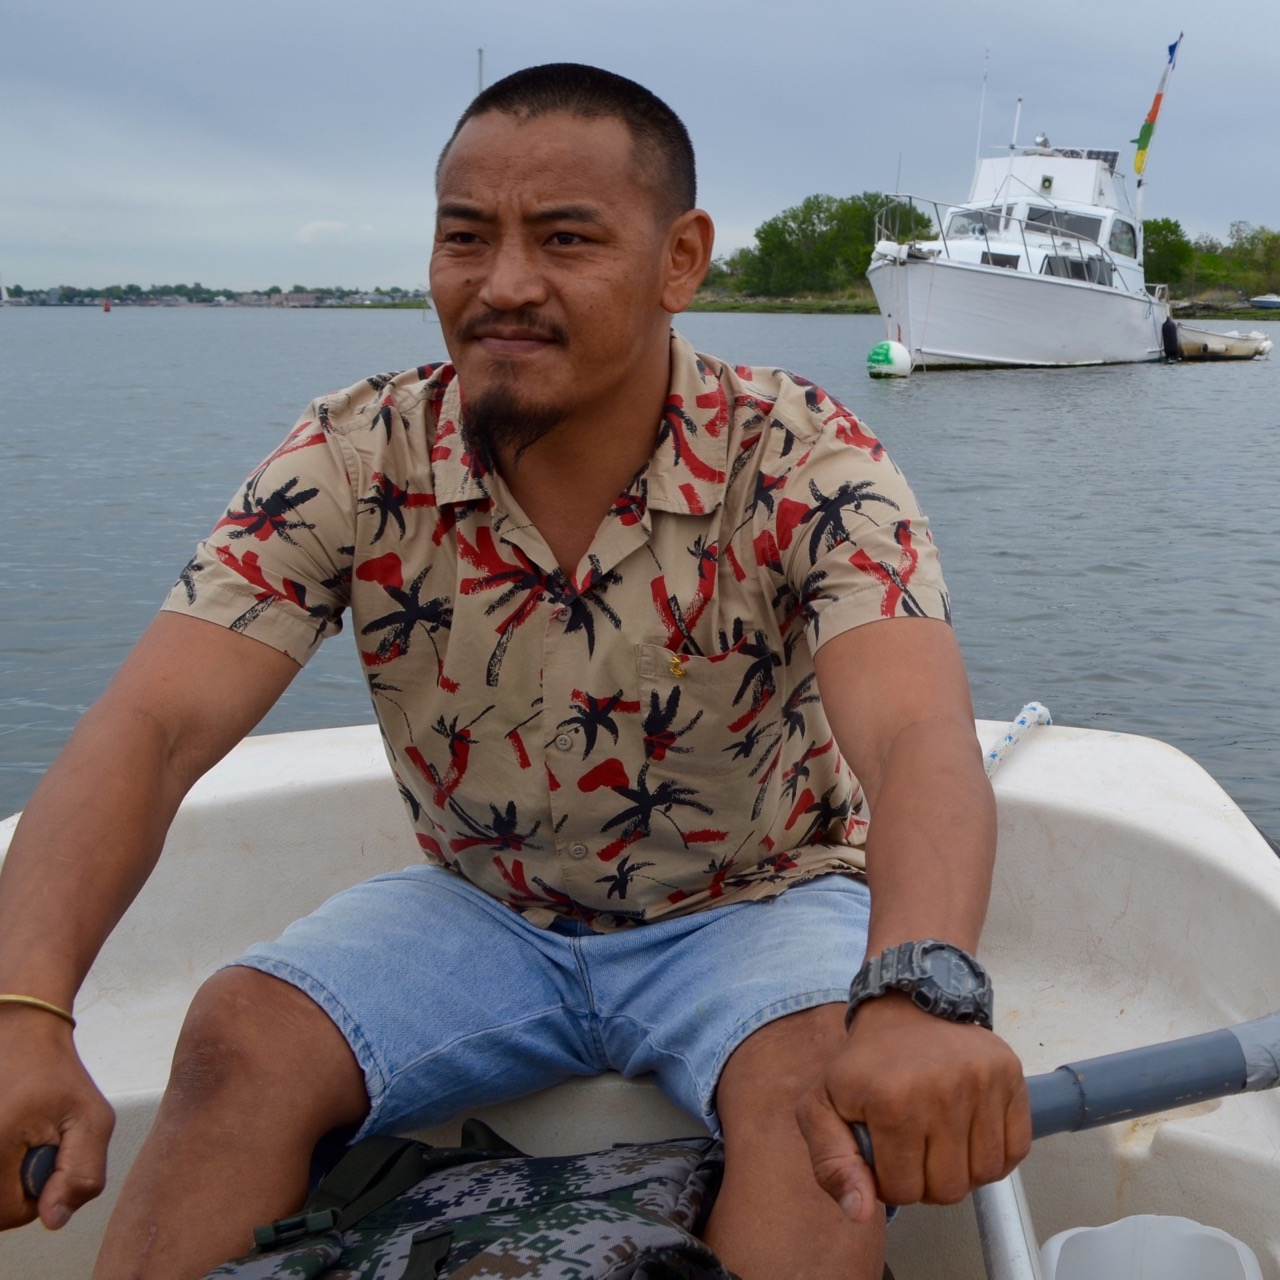 Nepal native Gigmy Bista has to row to shore from his City Island houseboat for fresh water. The lifestyle reminds him of back home.